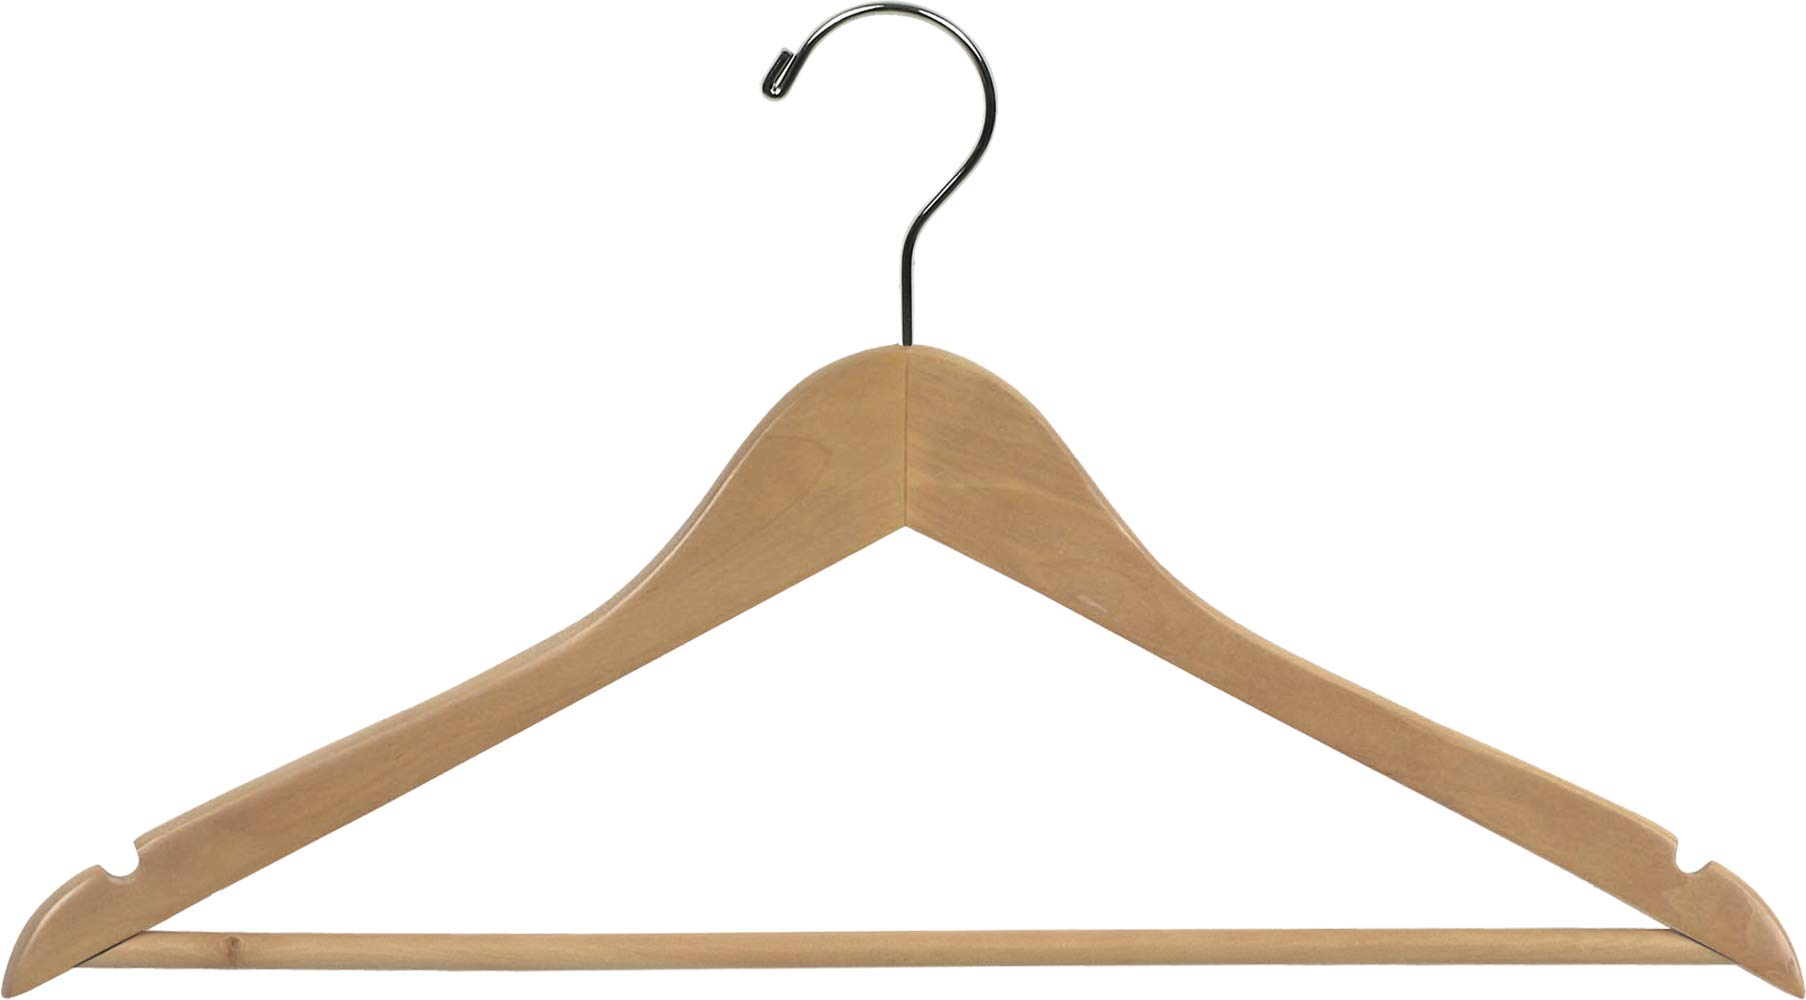 The Great American Hanger Company Wood Suit Hanger w/Solid Wood Bar, Box of 100 Space Saving 17 Inch Flat Wooden Hangers w/Natural Finish & Chrome Swivel Hook & Notches for Shirt Dress or Pants by The Great American Hanger Company